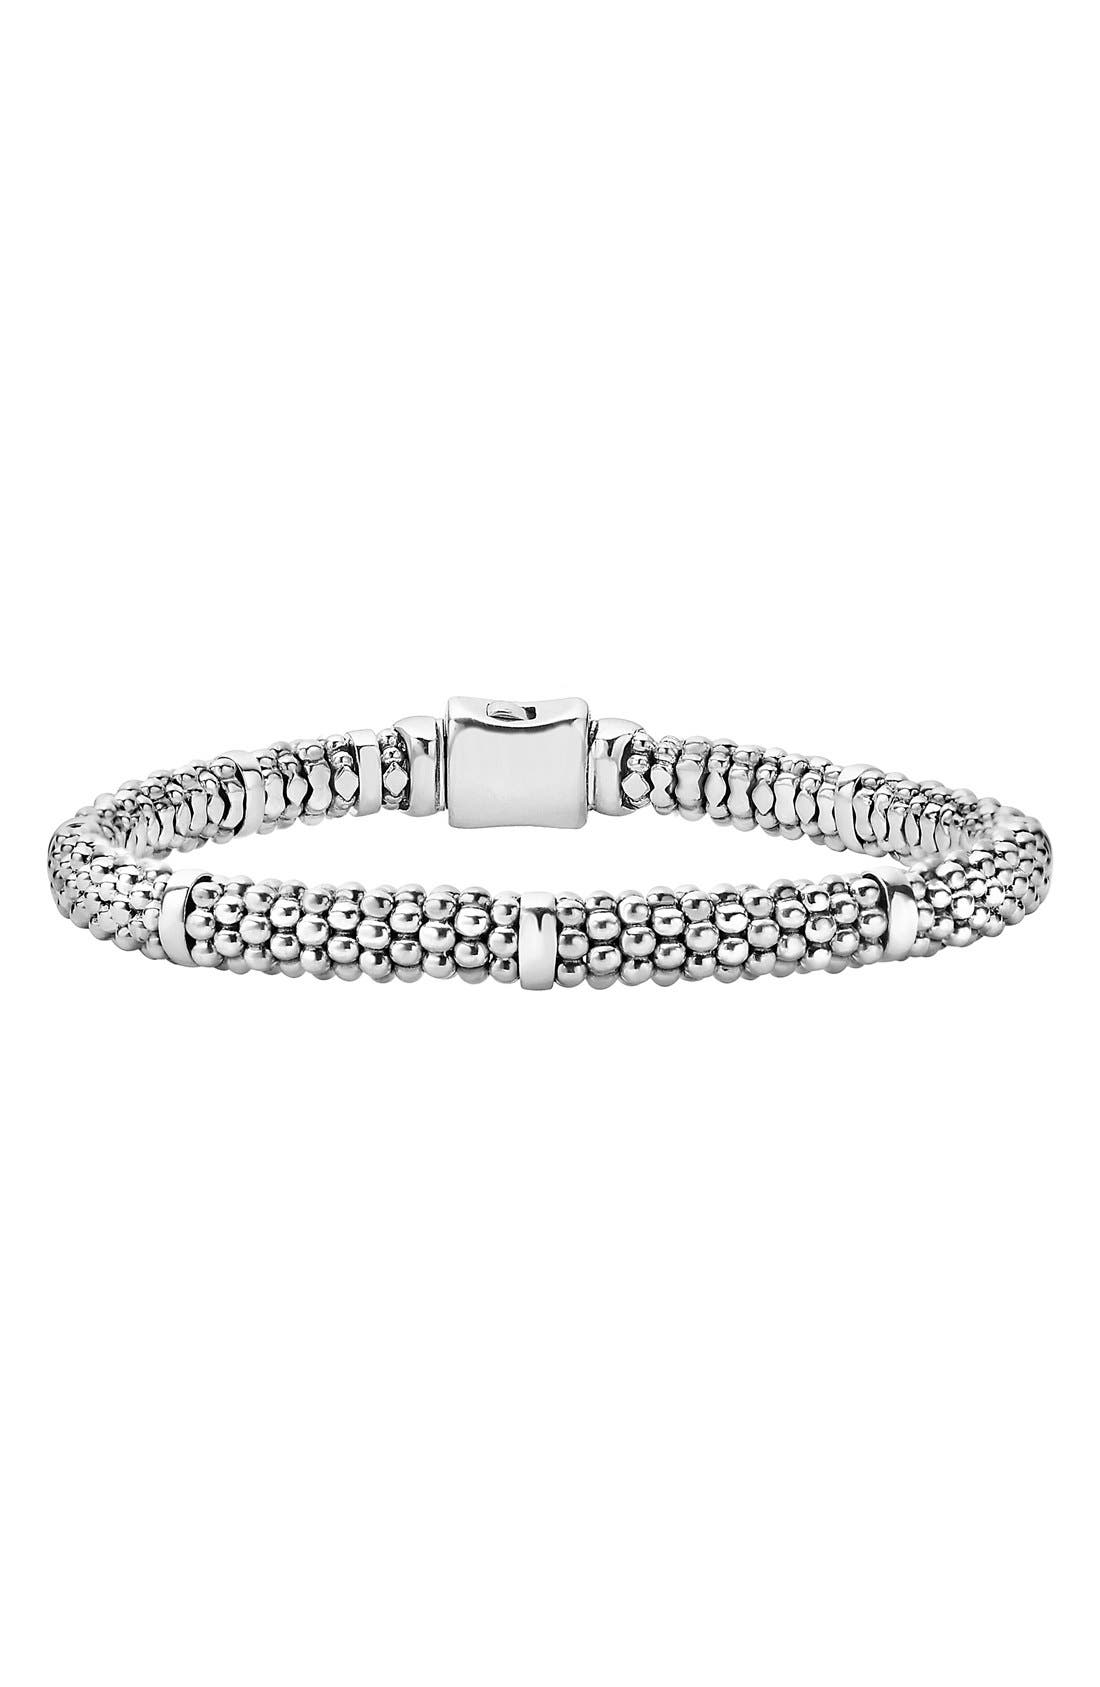 LAGOS, Caviar Rope Station Bracelet, Main thumbnail 1, color, STERLING SILVER